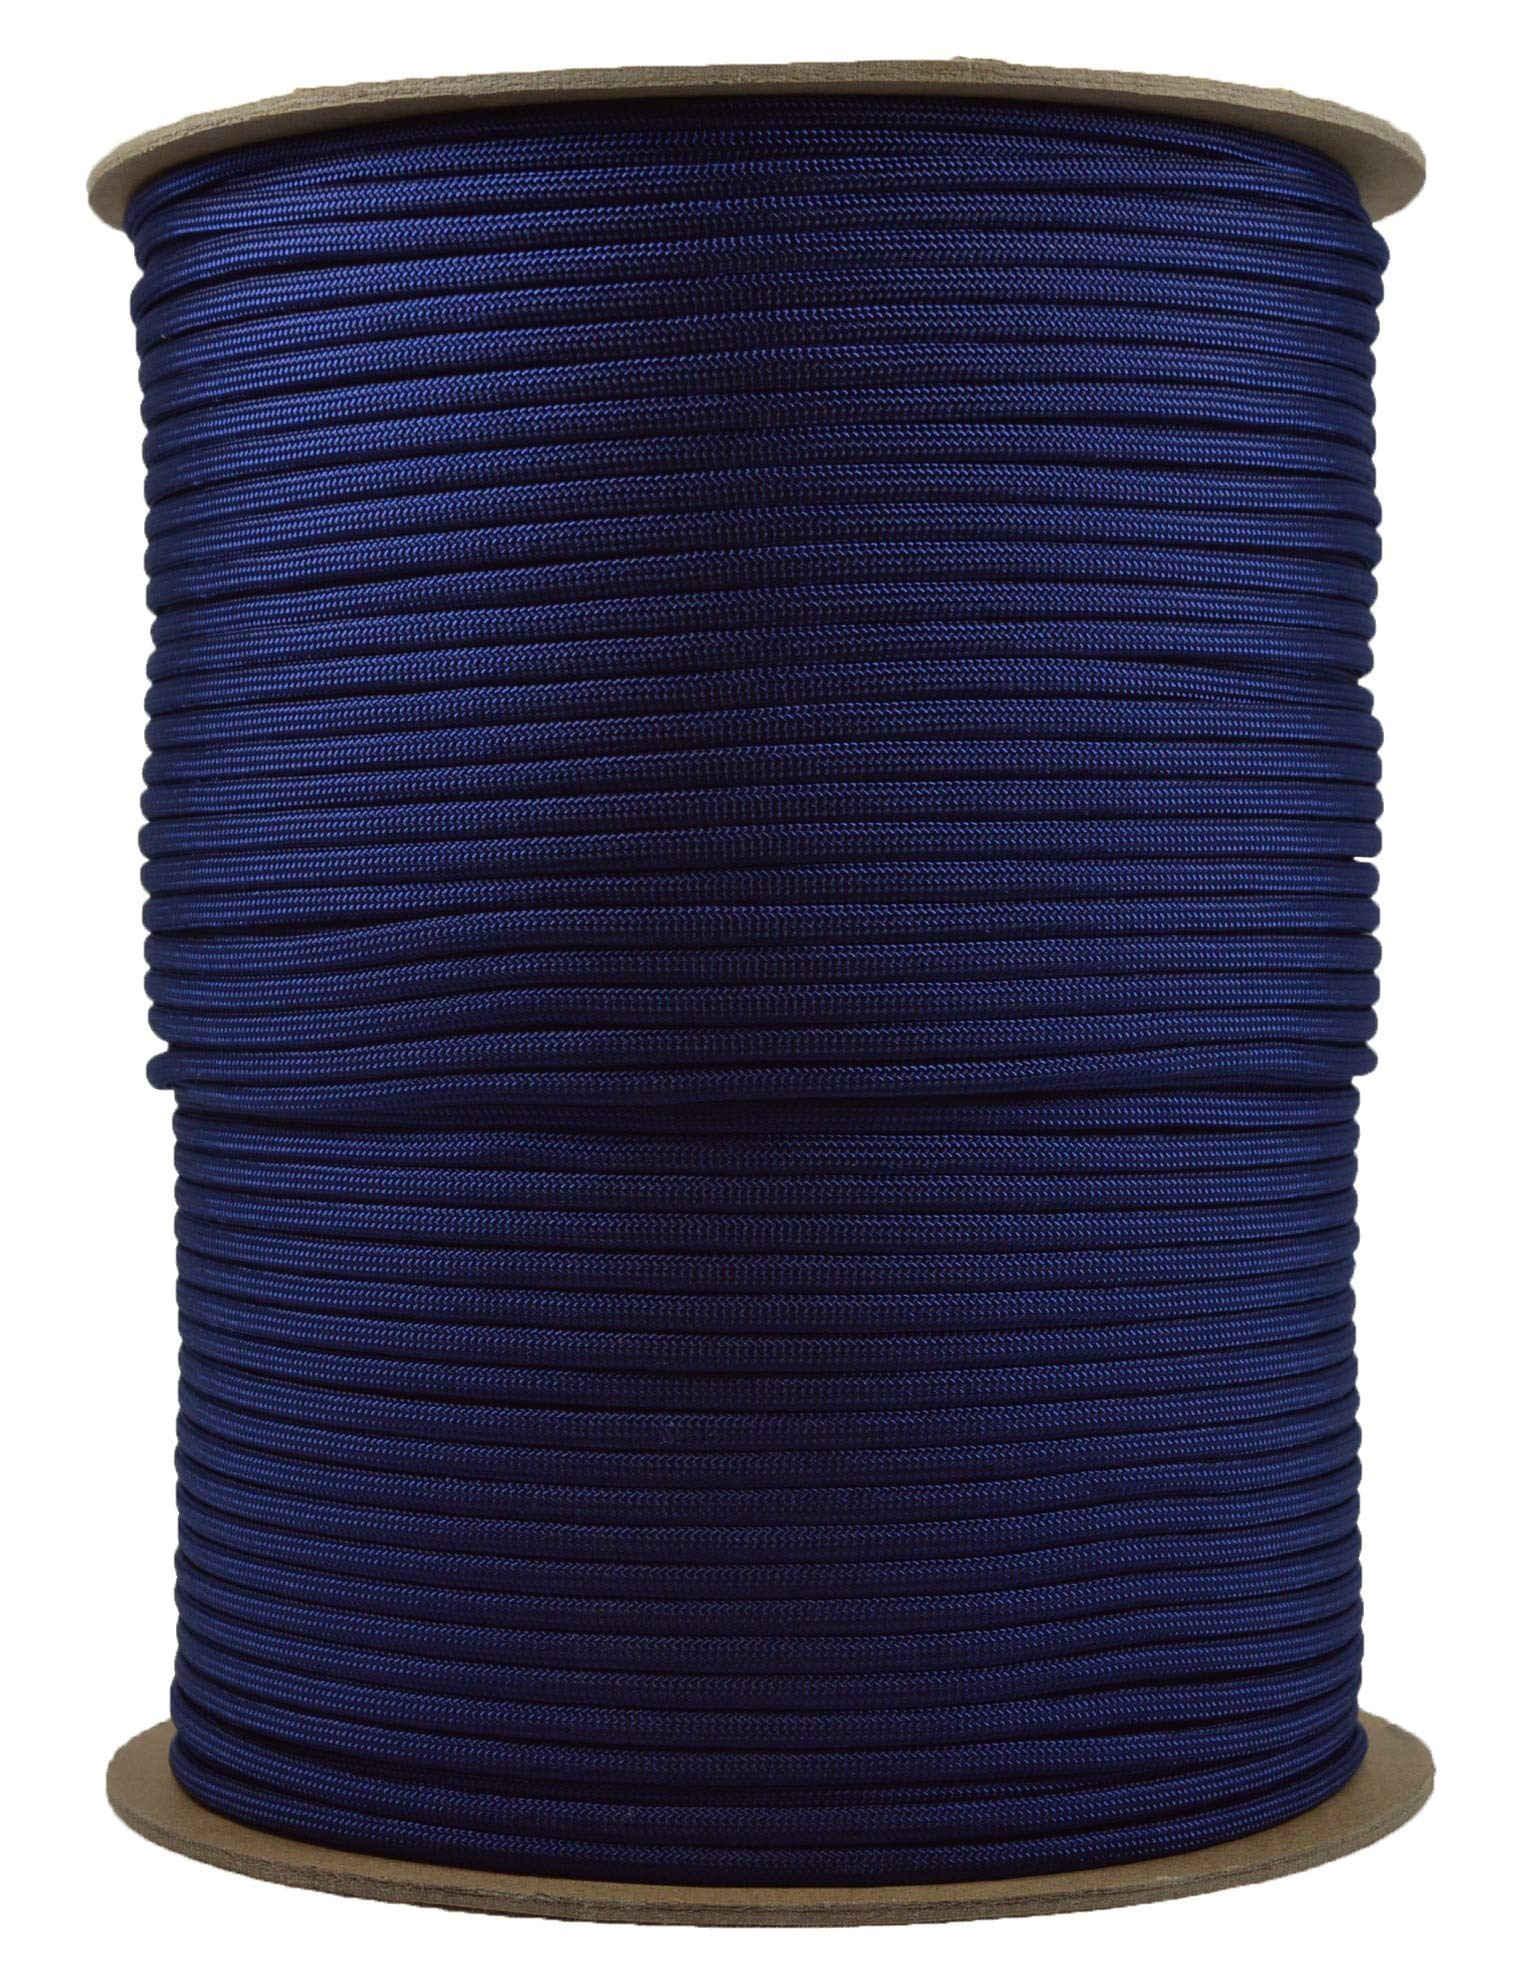 Acid Midnight Blue Mil-Spec Commercial Grade 550lb Type III Nylon Paracord - 1000 Foot Spool